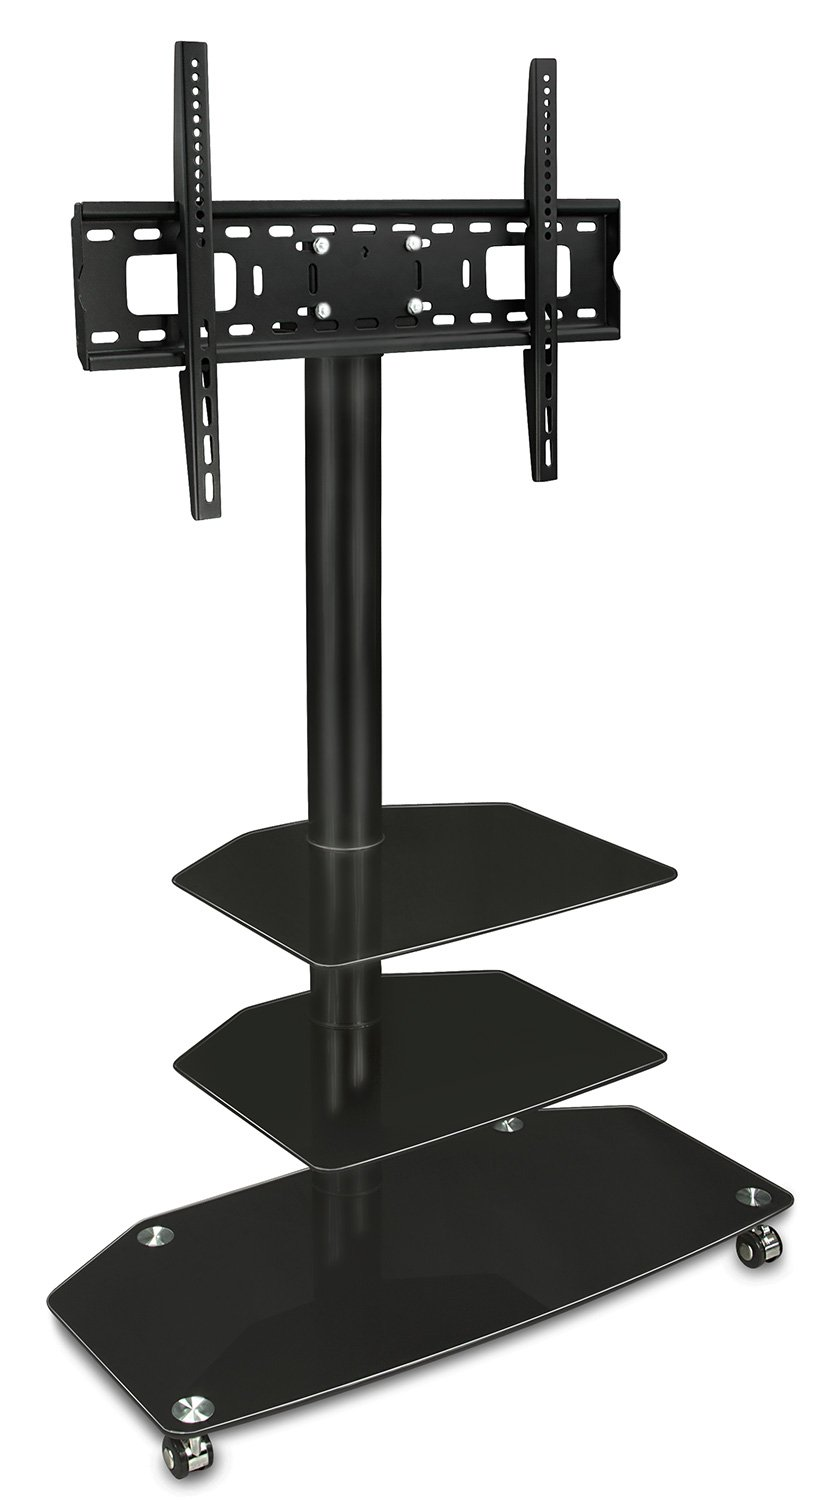 Mount-It Mobile TV Stand – with Rolling Casters Three-Tiered Glass Shelving – Fits 32 -60 Displays